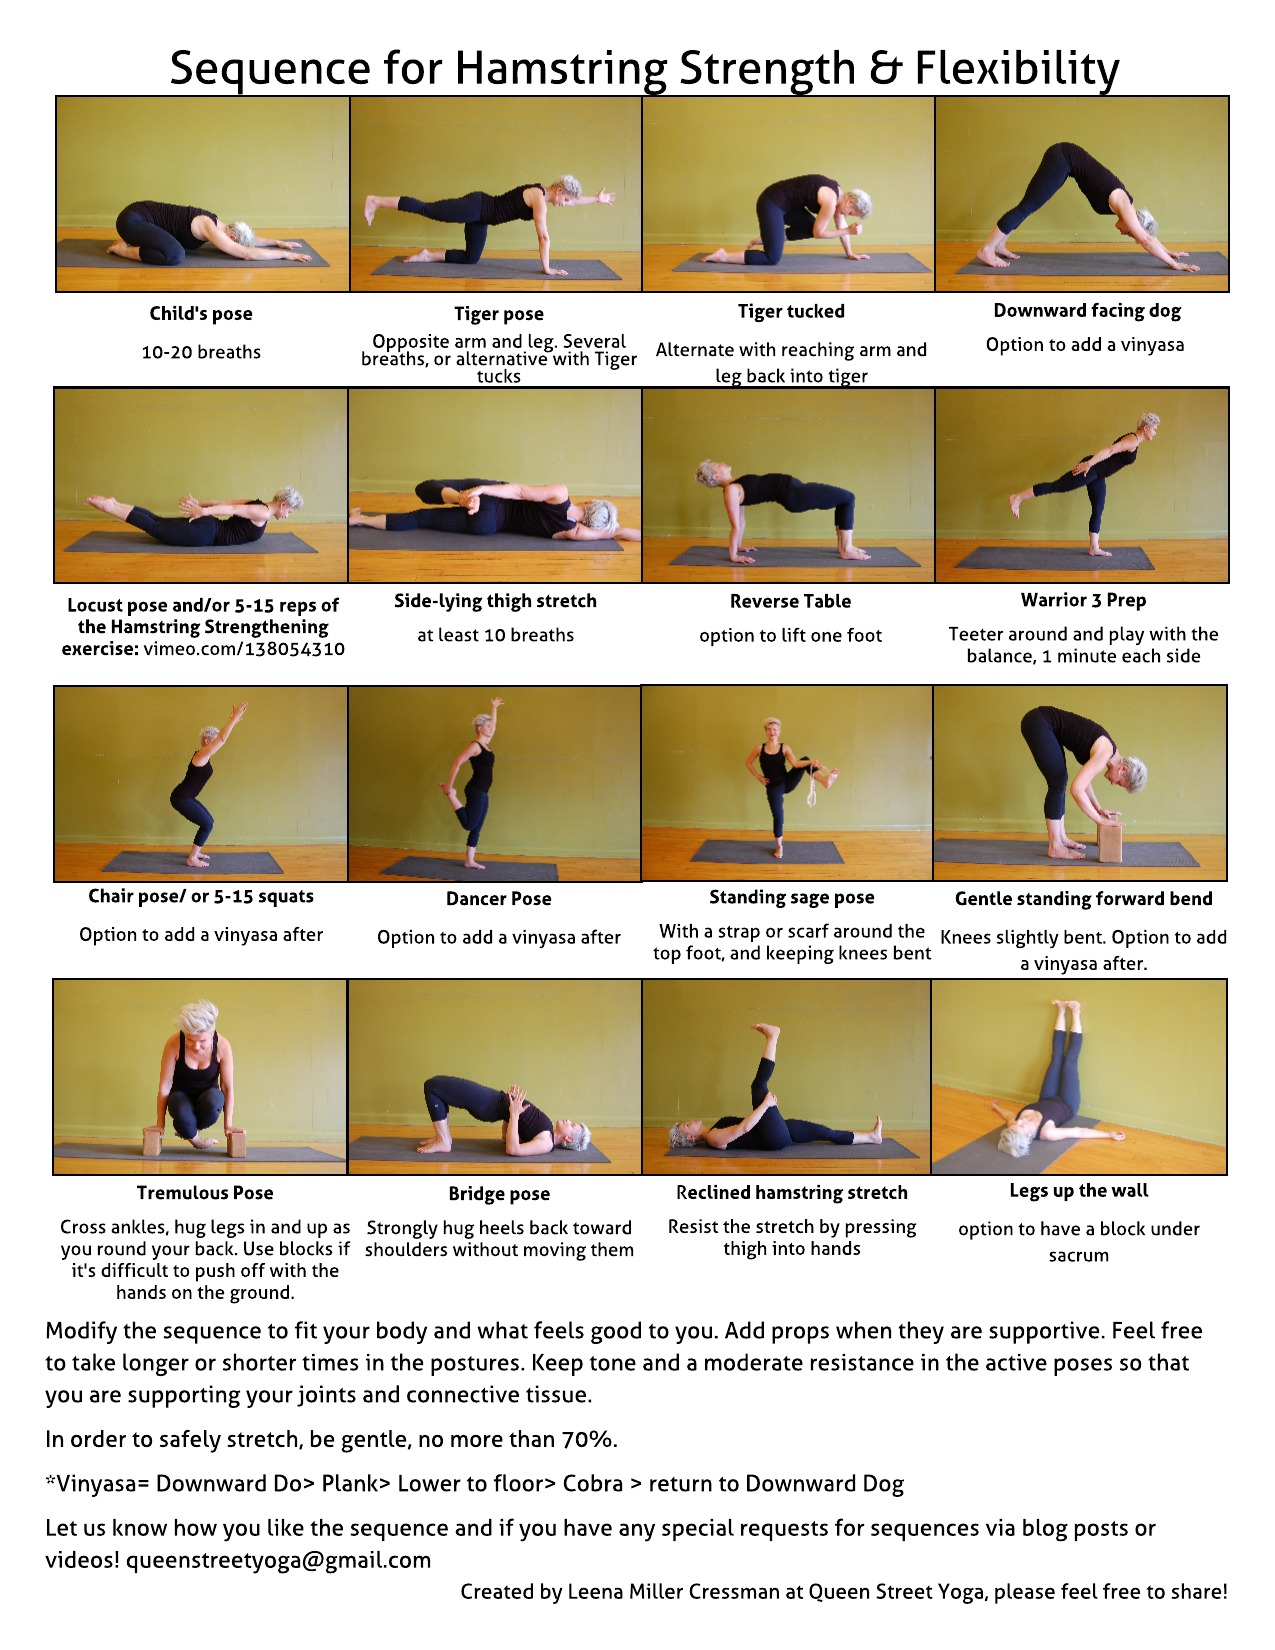 Hamstring Strength And Flexibility Sequence Queen Street Yoga